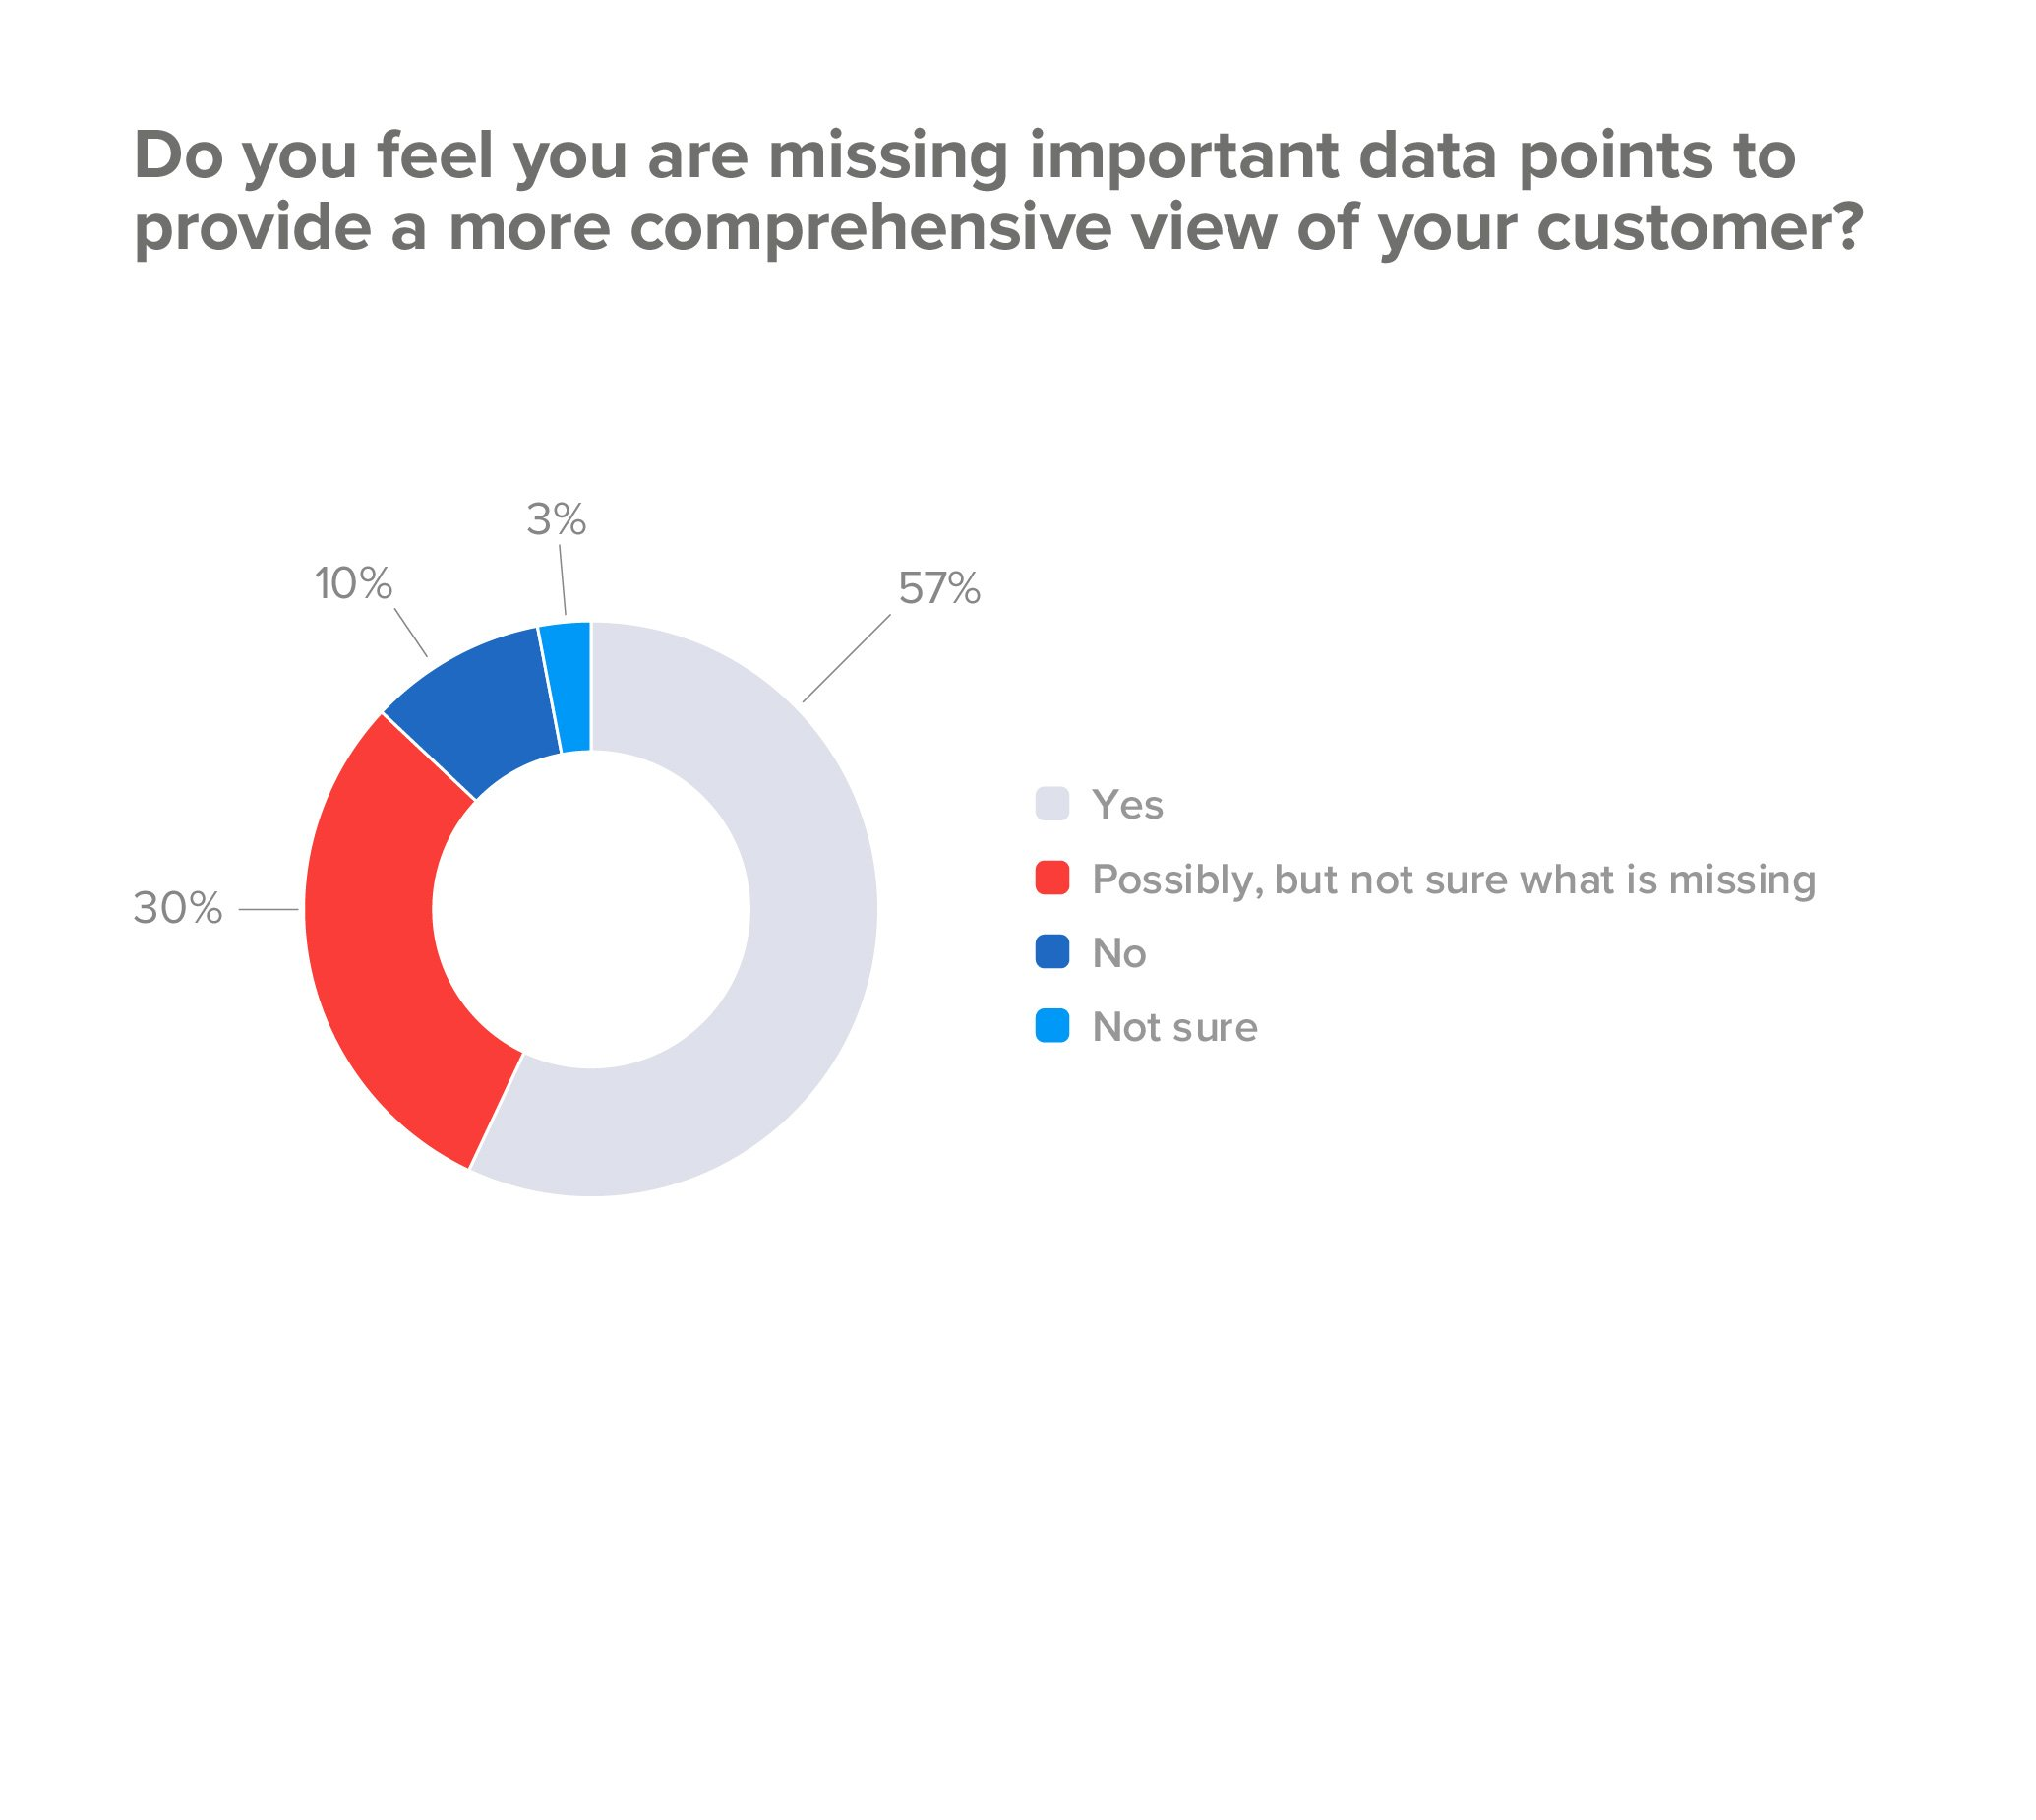 Are you missing important customer data points?